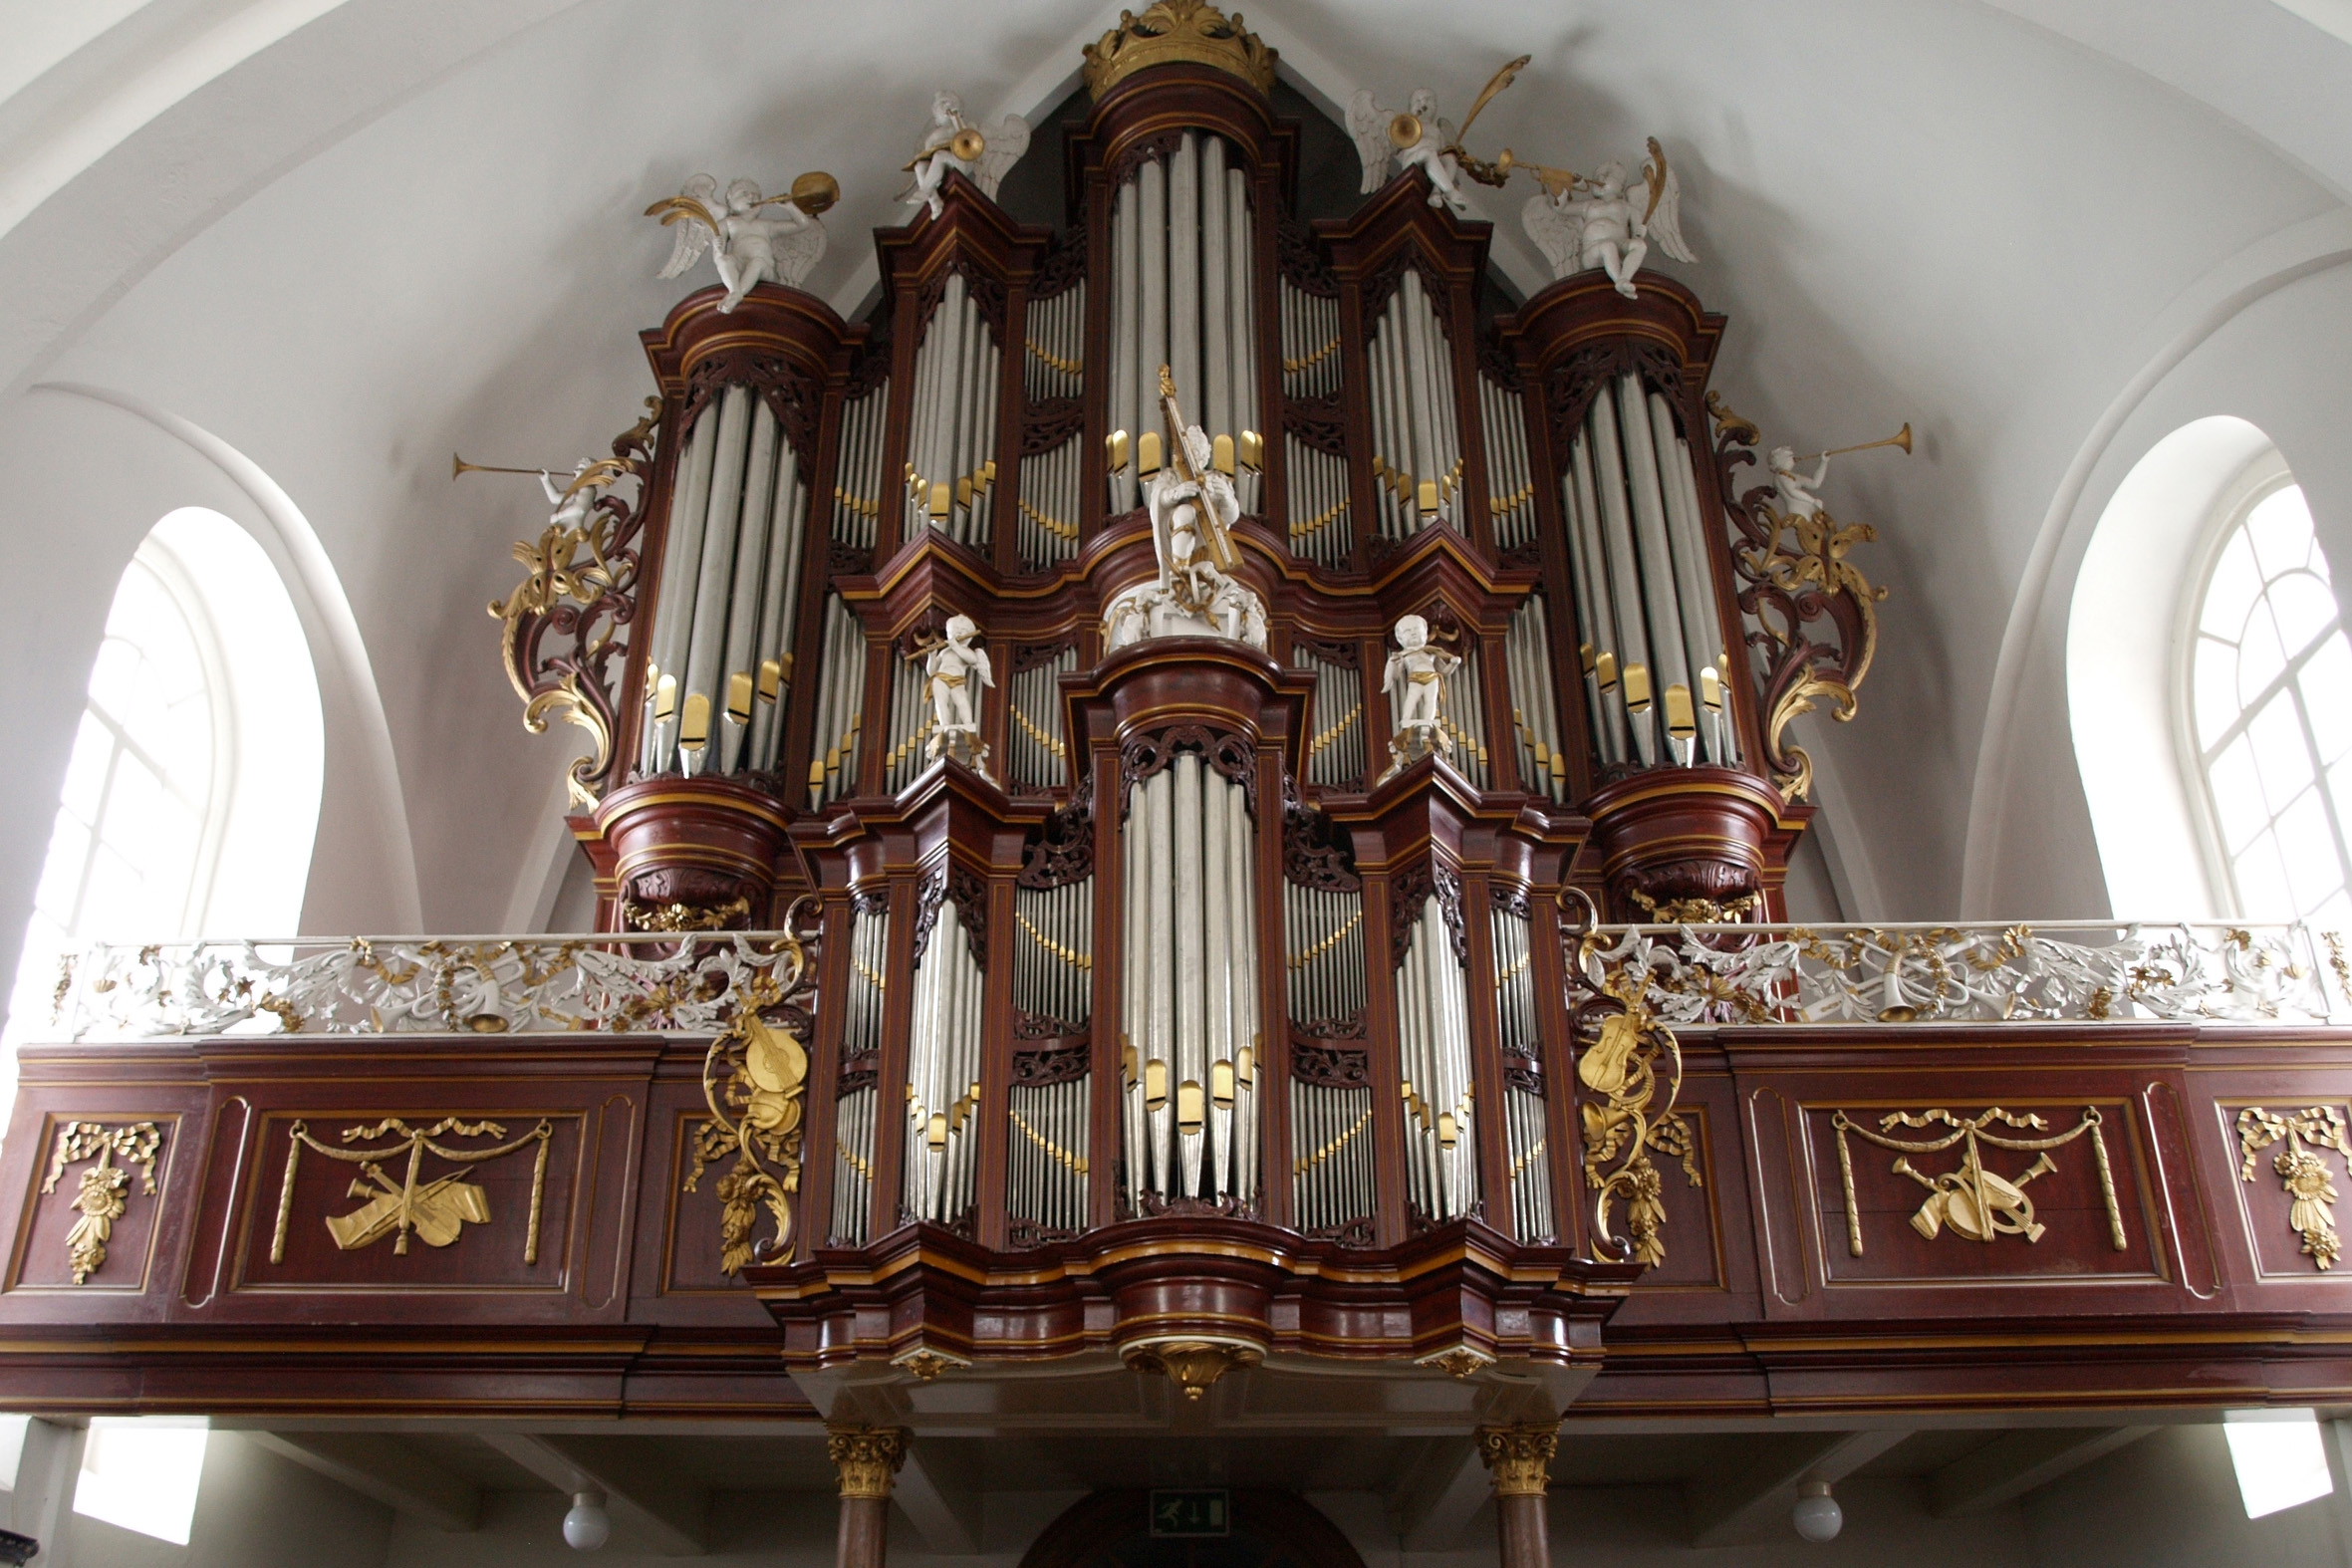 1733 HINSZ ORGAN, LEENS, HOLLAND